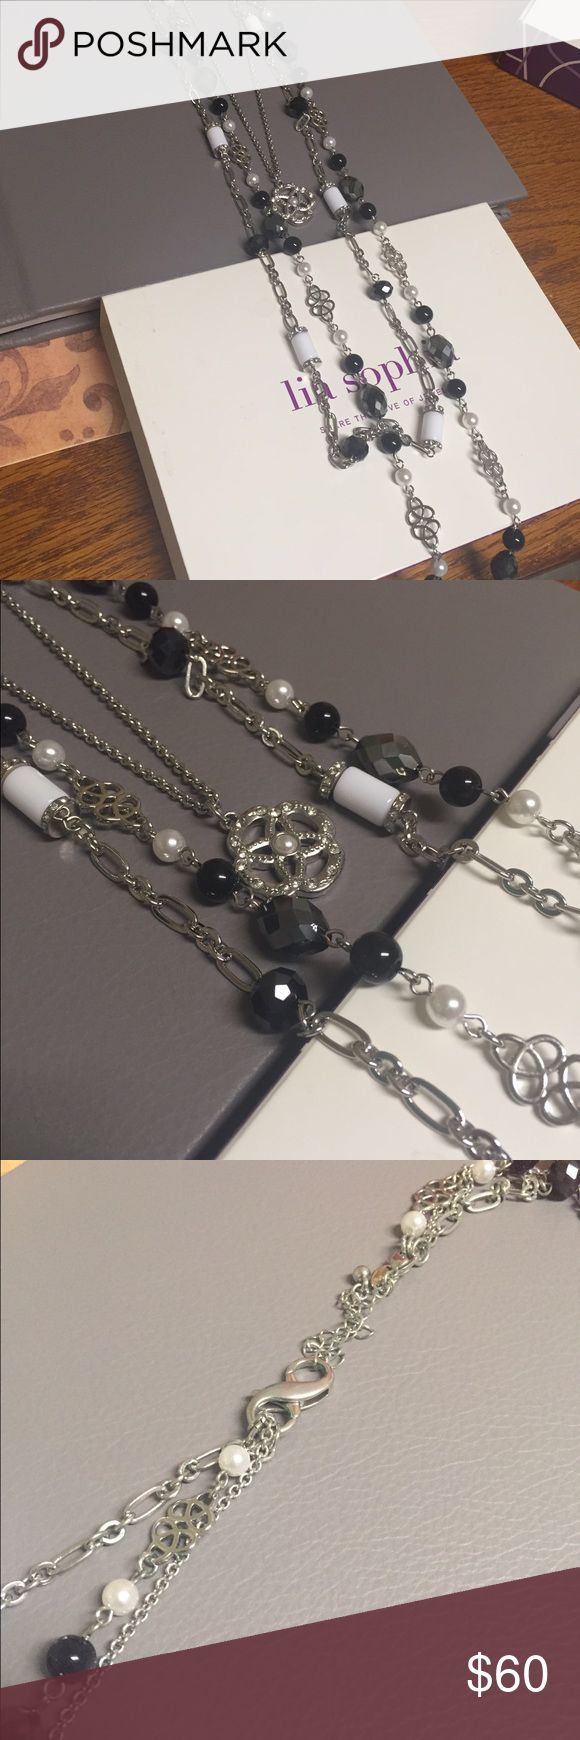 Lia Sophia 3 in 1 necklace This is the 3 in 1 Lia Sophia necklace. It has 3 chains that hook together on the clasp. This is beautiful and one of my favorites. Comes with the box, worn a few times, excellent condition!Sad to let it go! 💕 Lia Sophia Jewelry Necklaces